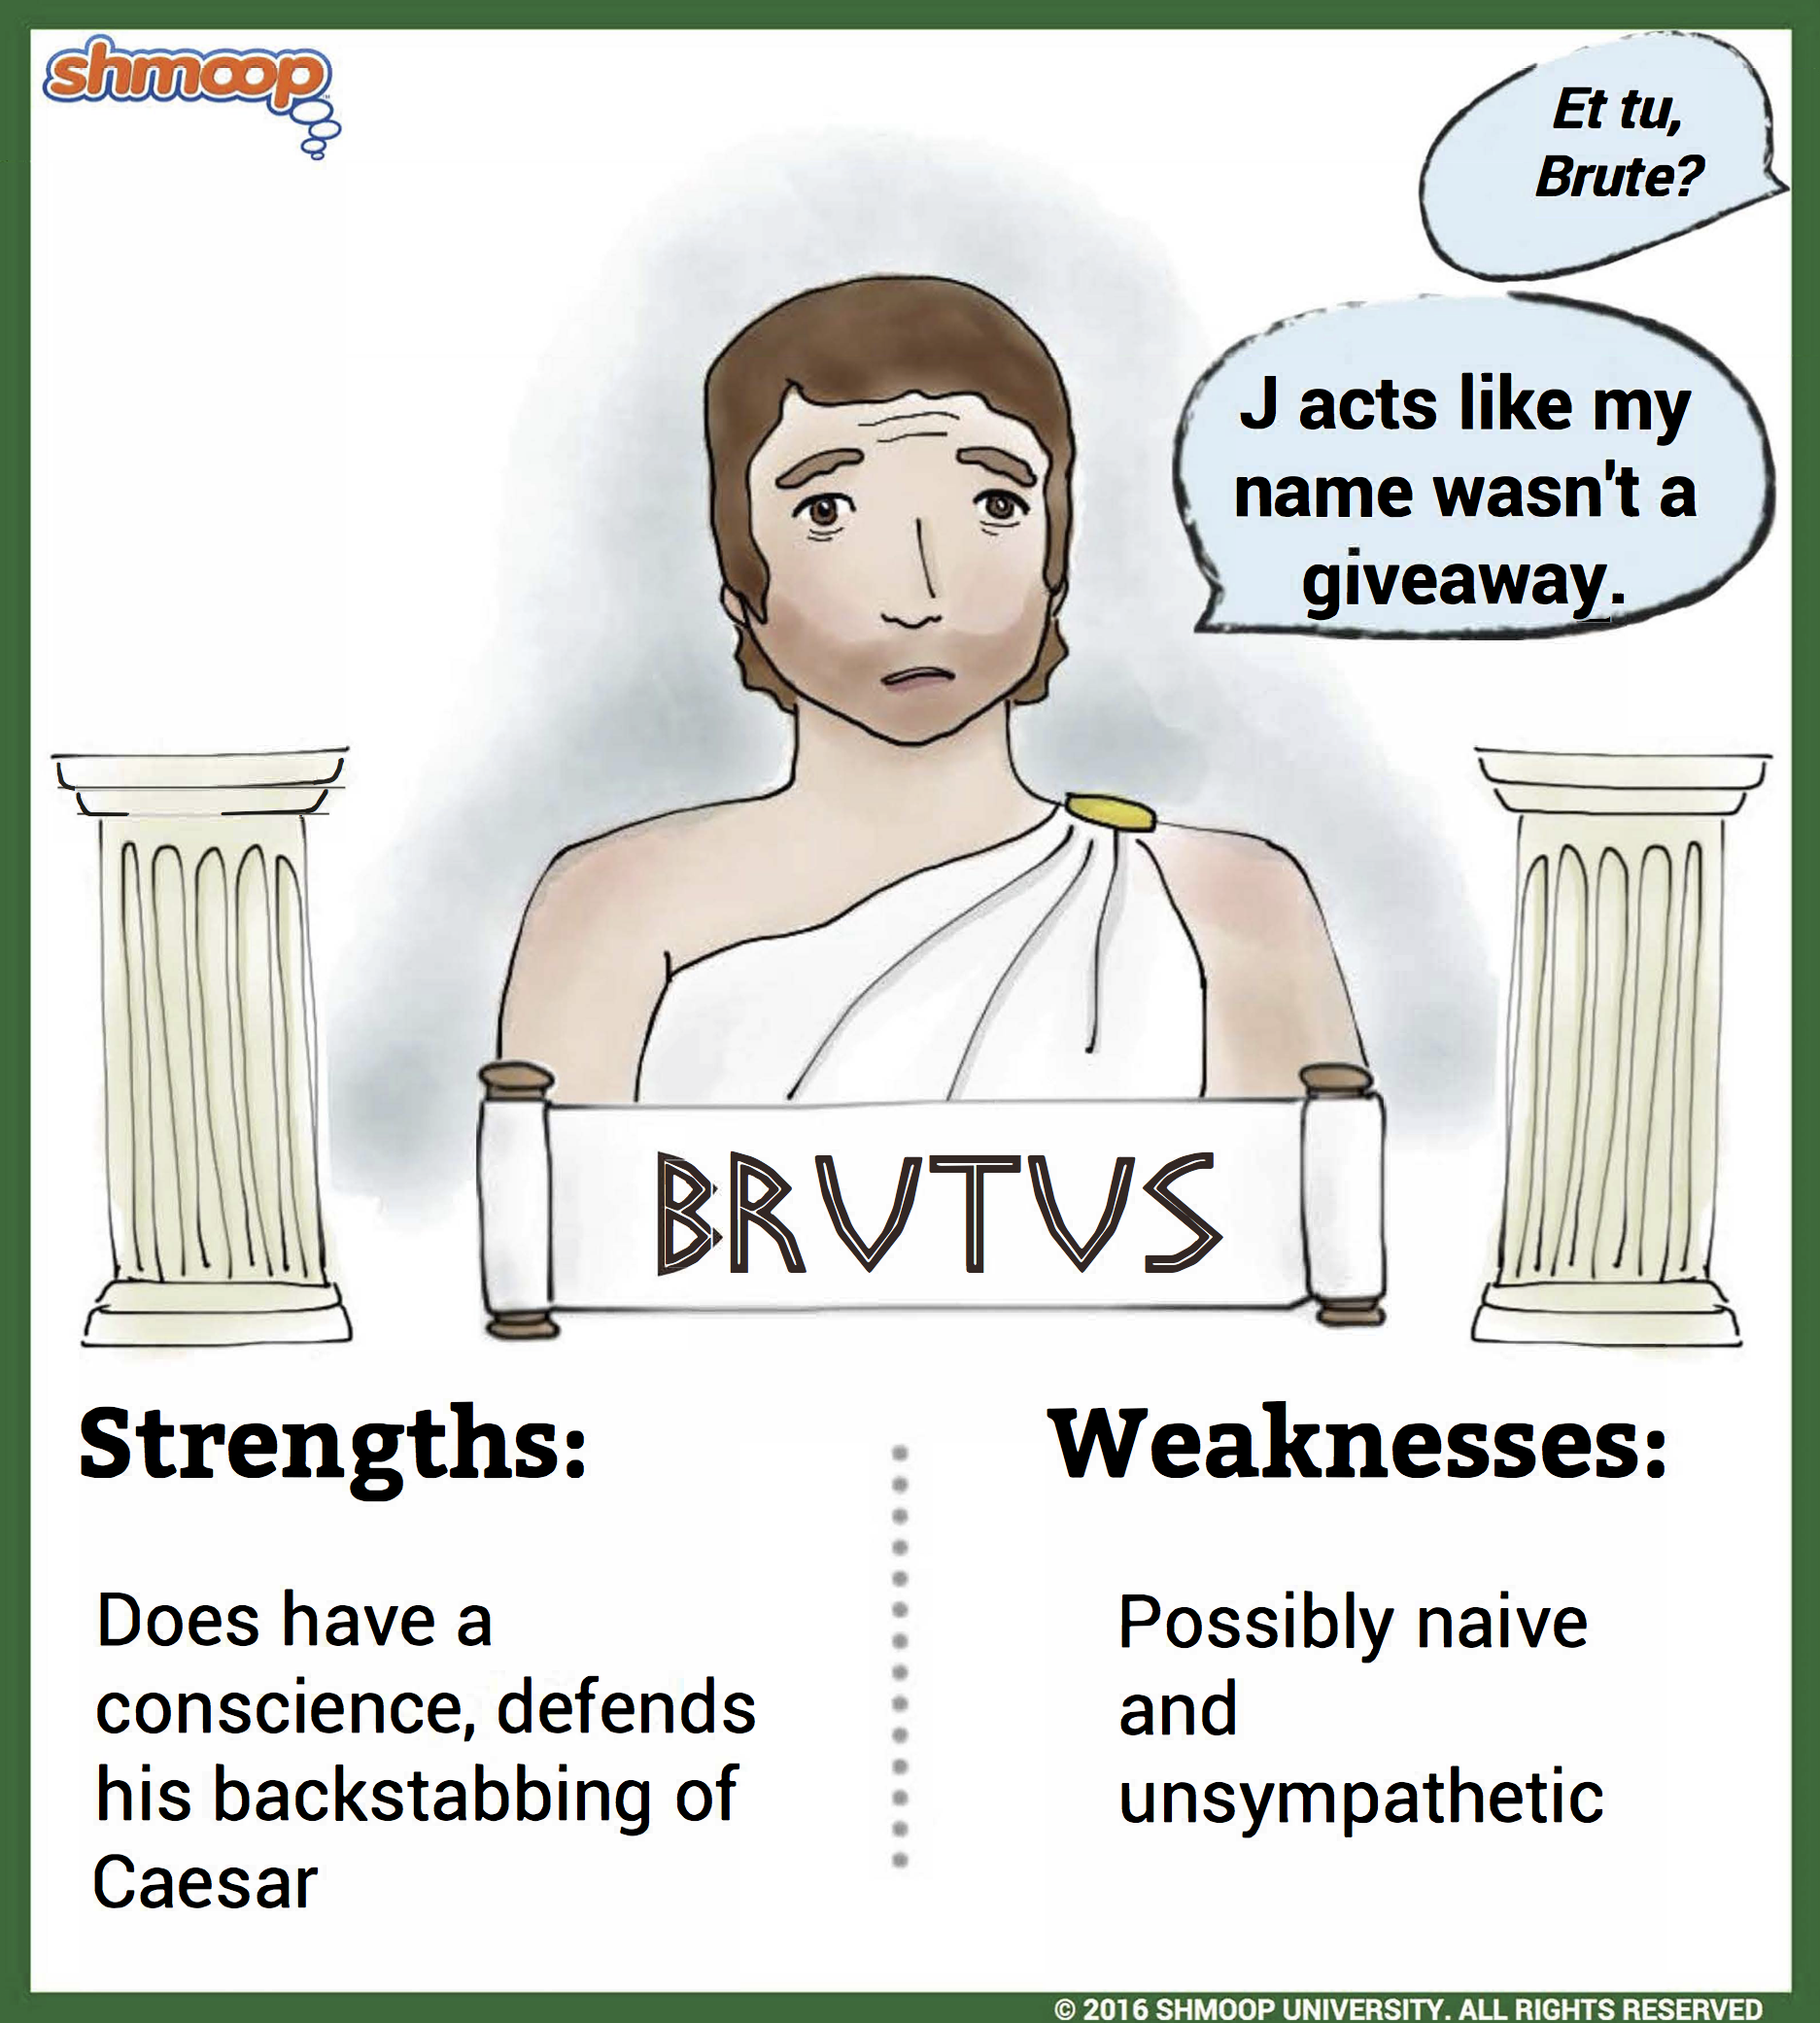 an analysis of the noble character of brutus in william shakespeares tragic play julius caesar Julius caesar (play)  in stabbing him where brutus attacks cassius for soiling the noble act of  mit and a character analysis of caesarshakespeare.